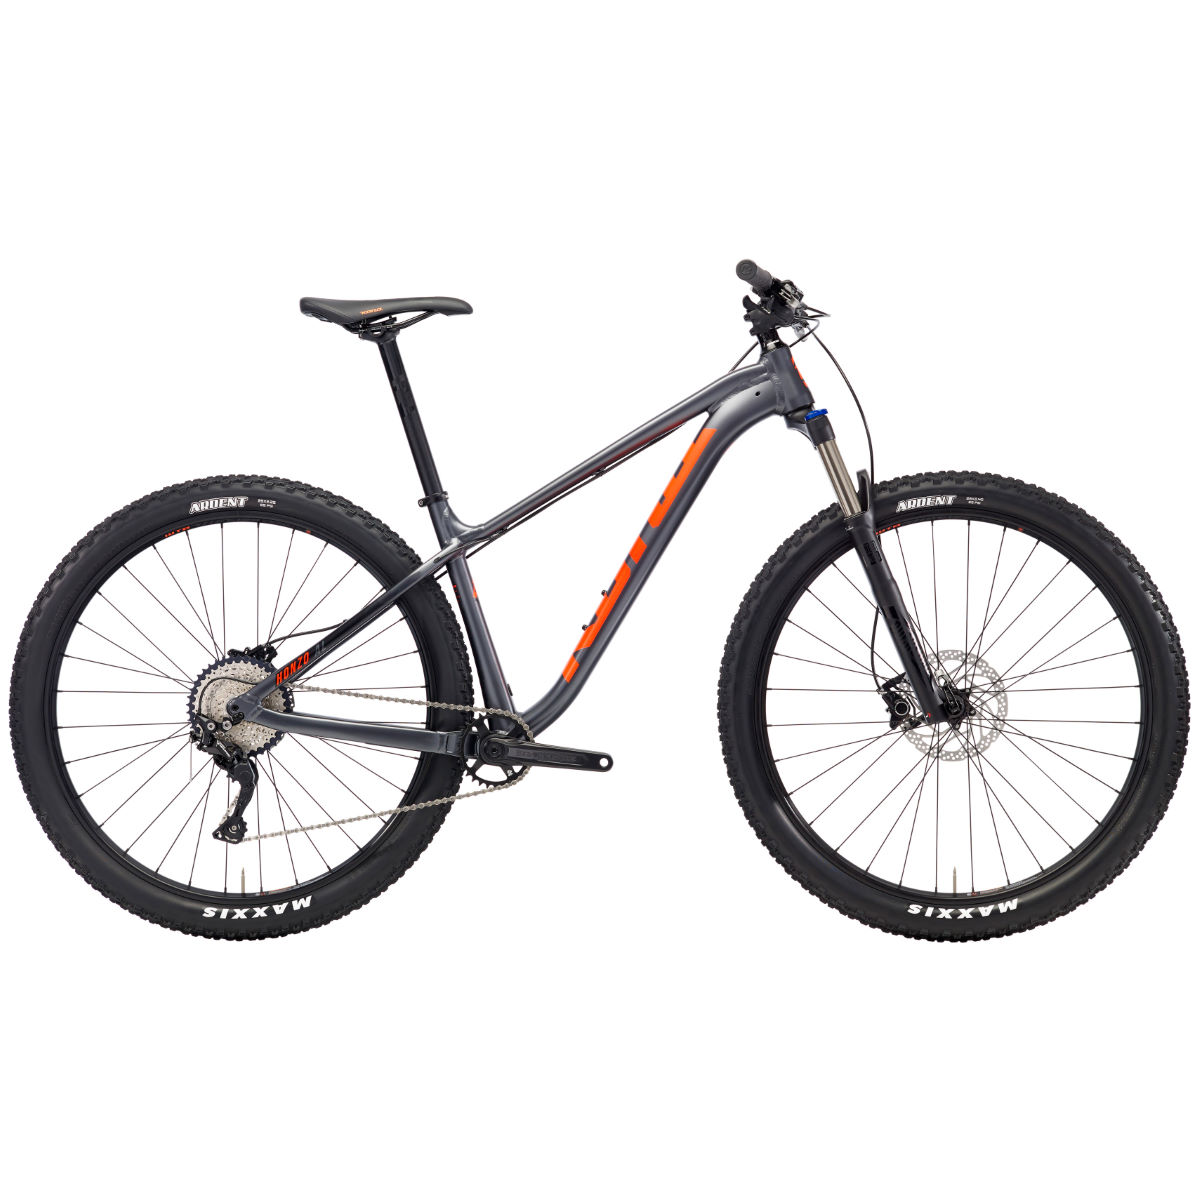 VTT Kona Honzo AL (2018) - Medium Stock Bike Gris VTT semi-rigides